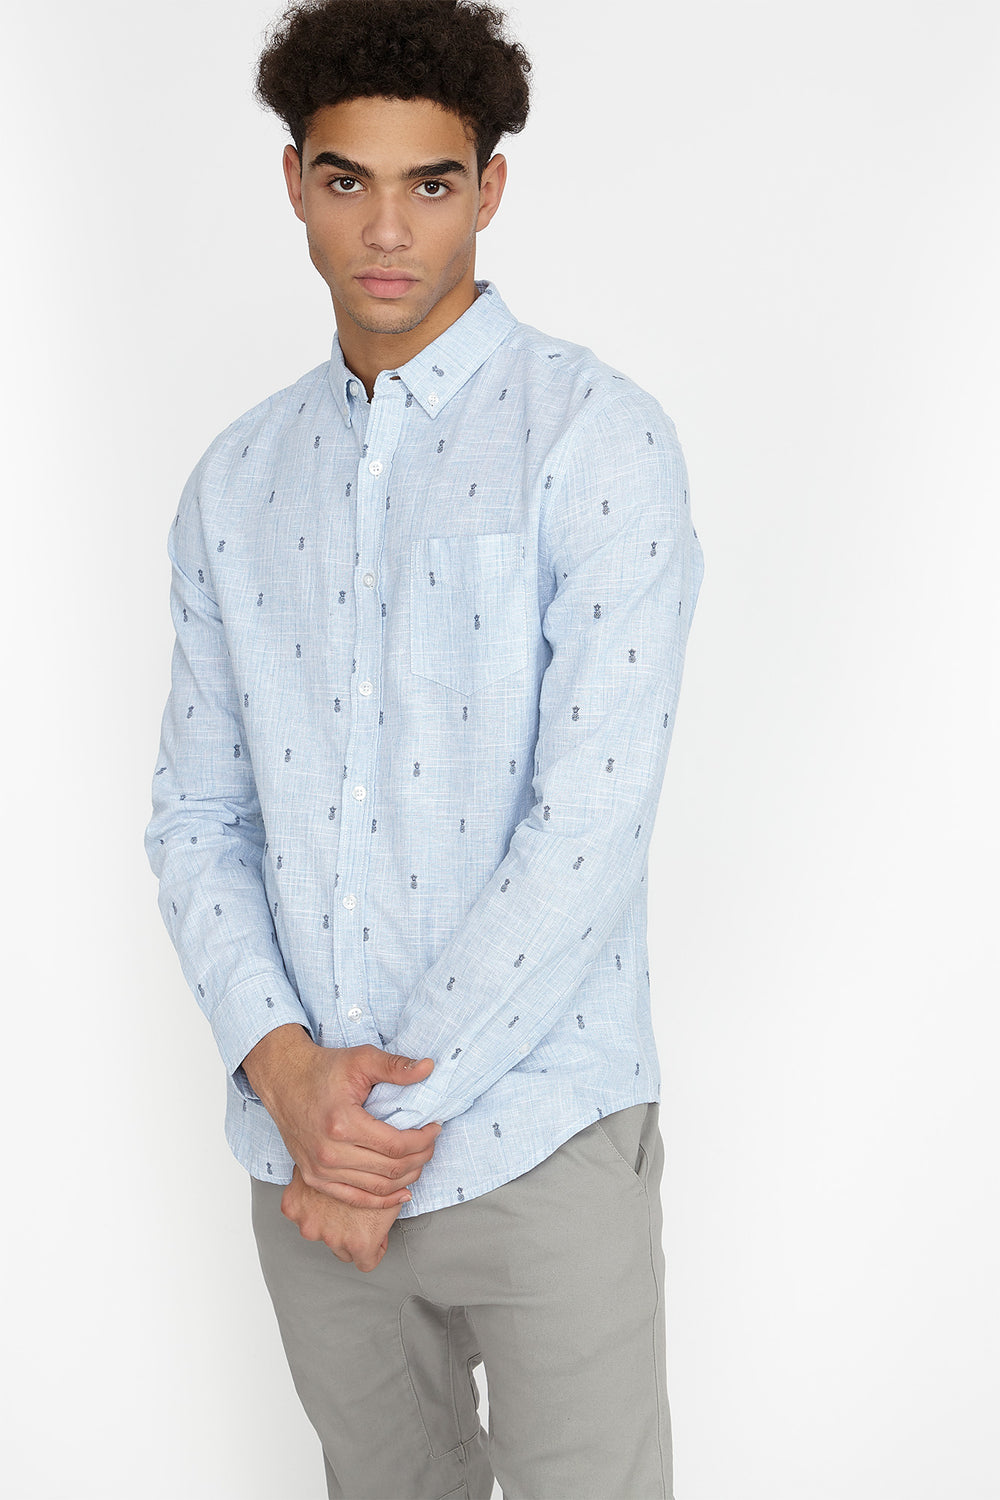 Linen Ditsy Printed Button-Up Top Light Blue